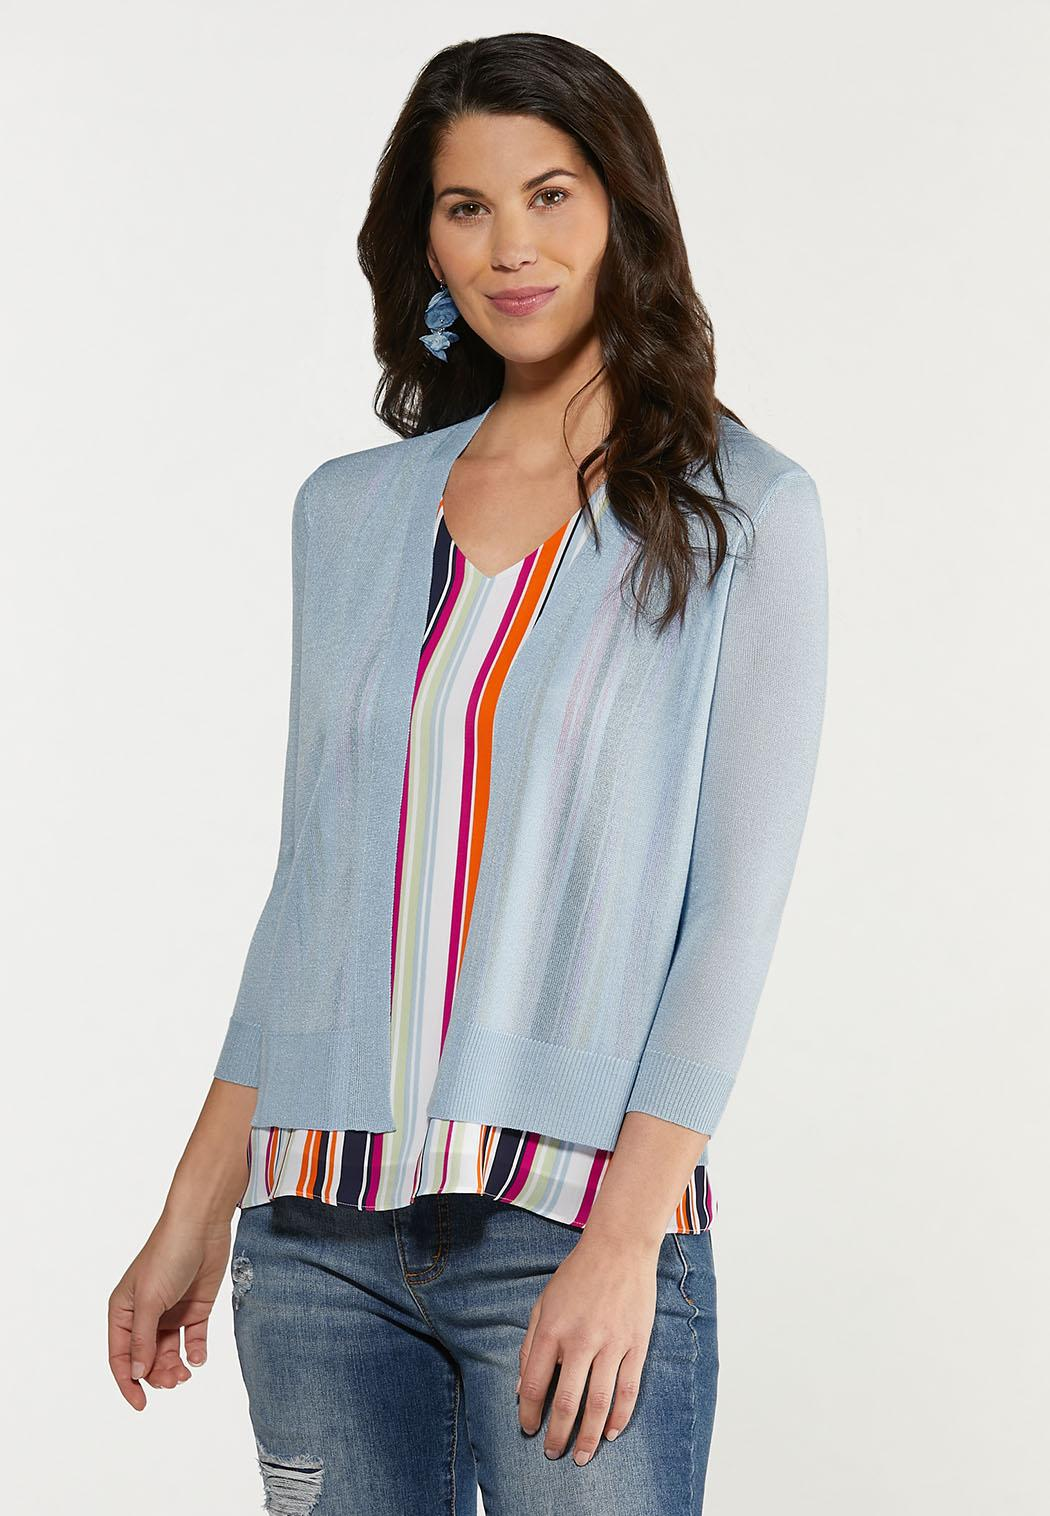 Plus Size Essential Sheer Cardigan